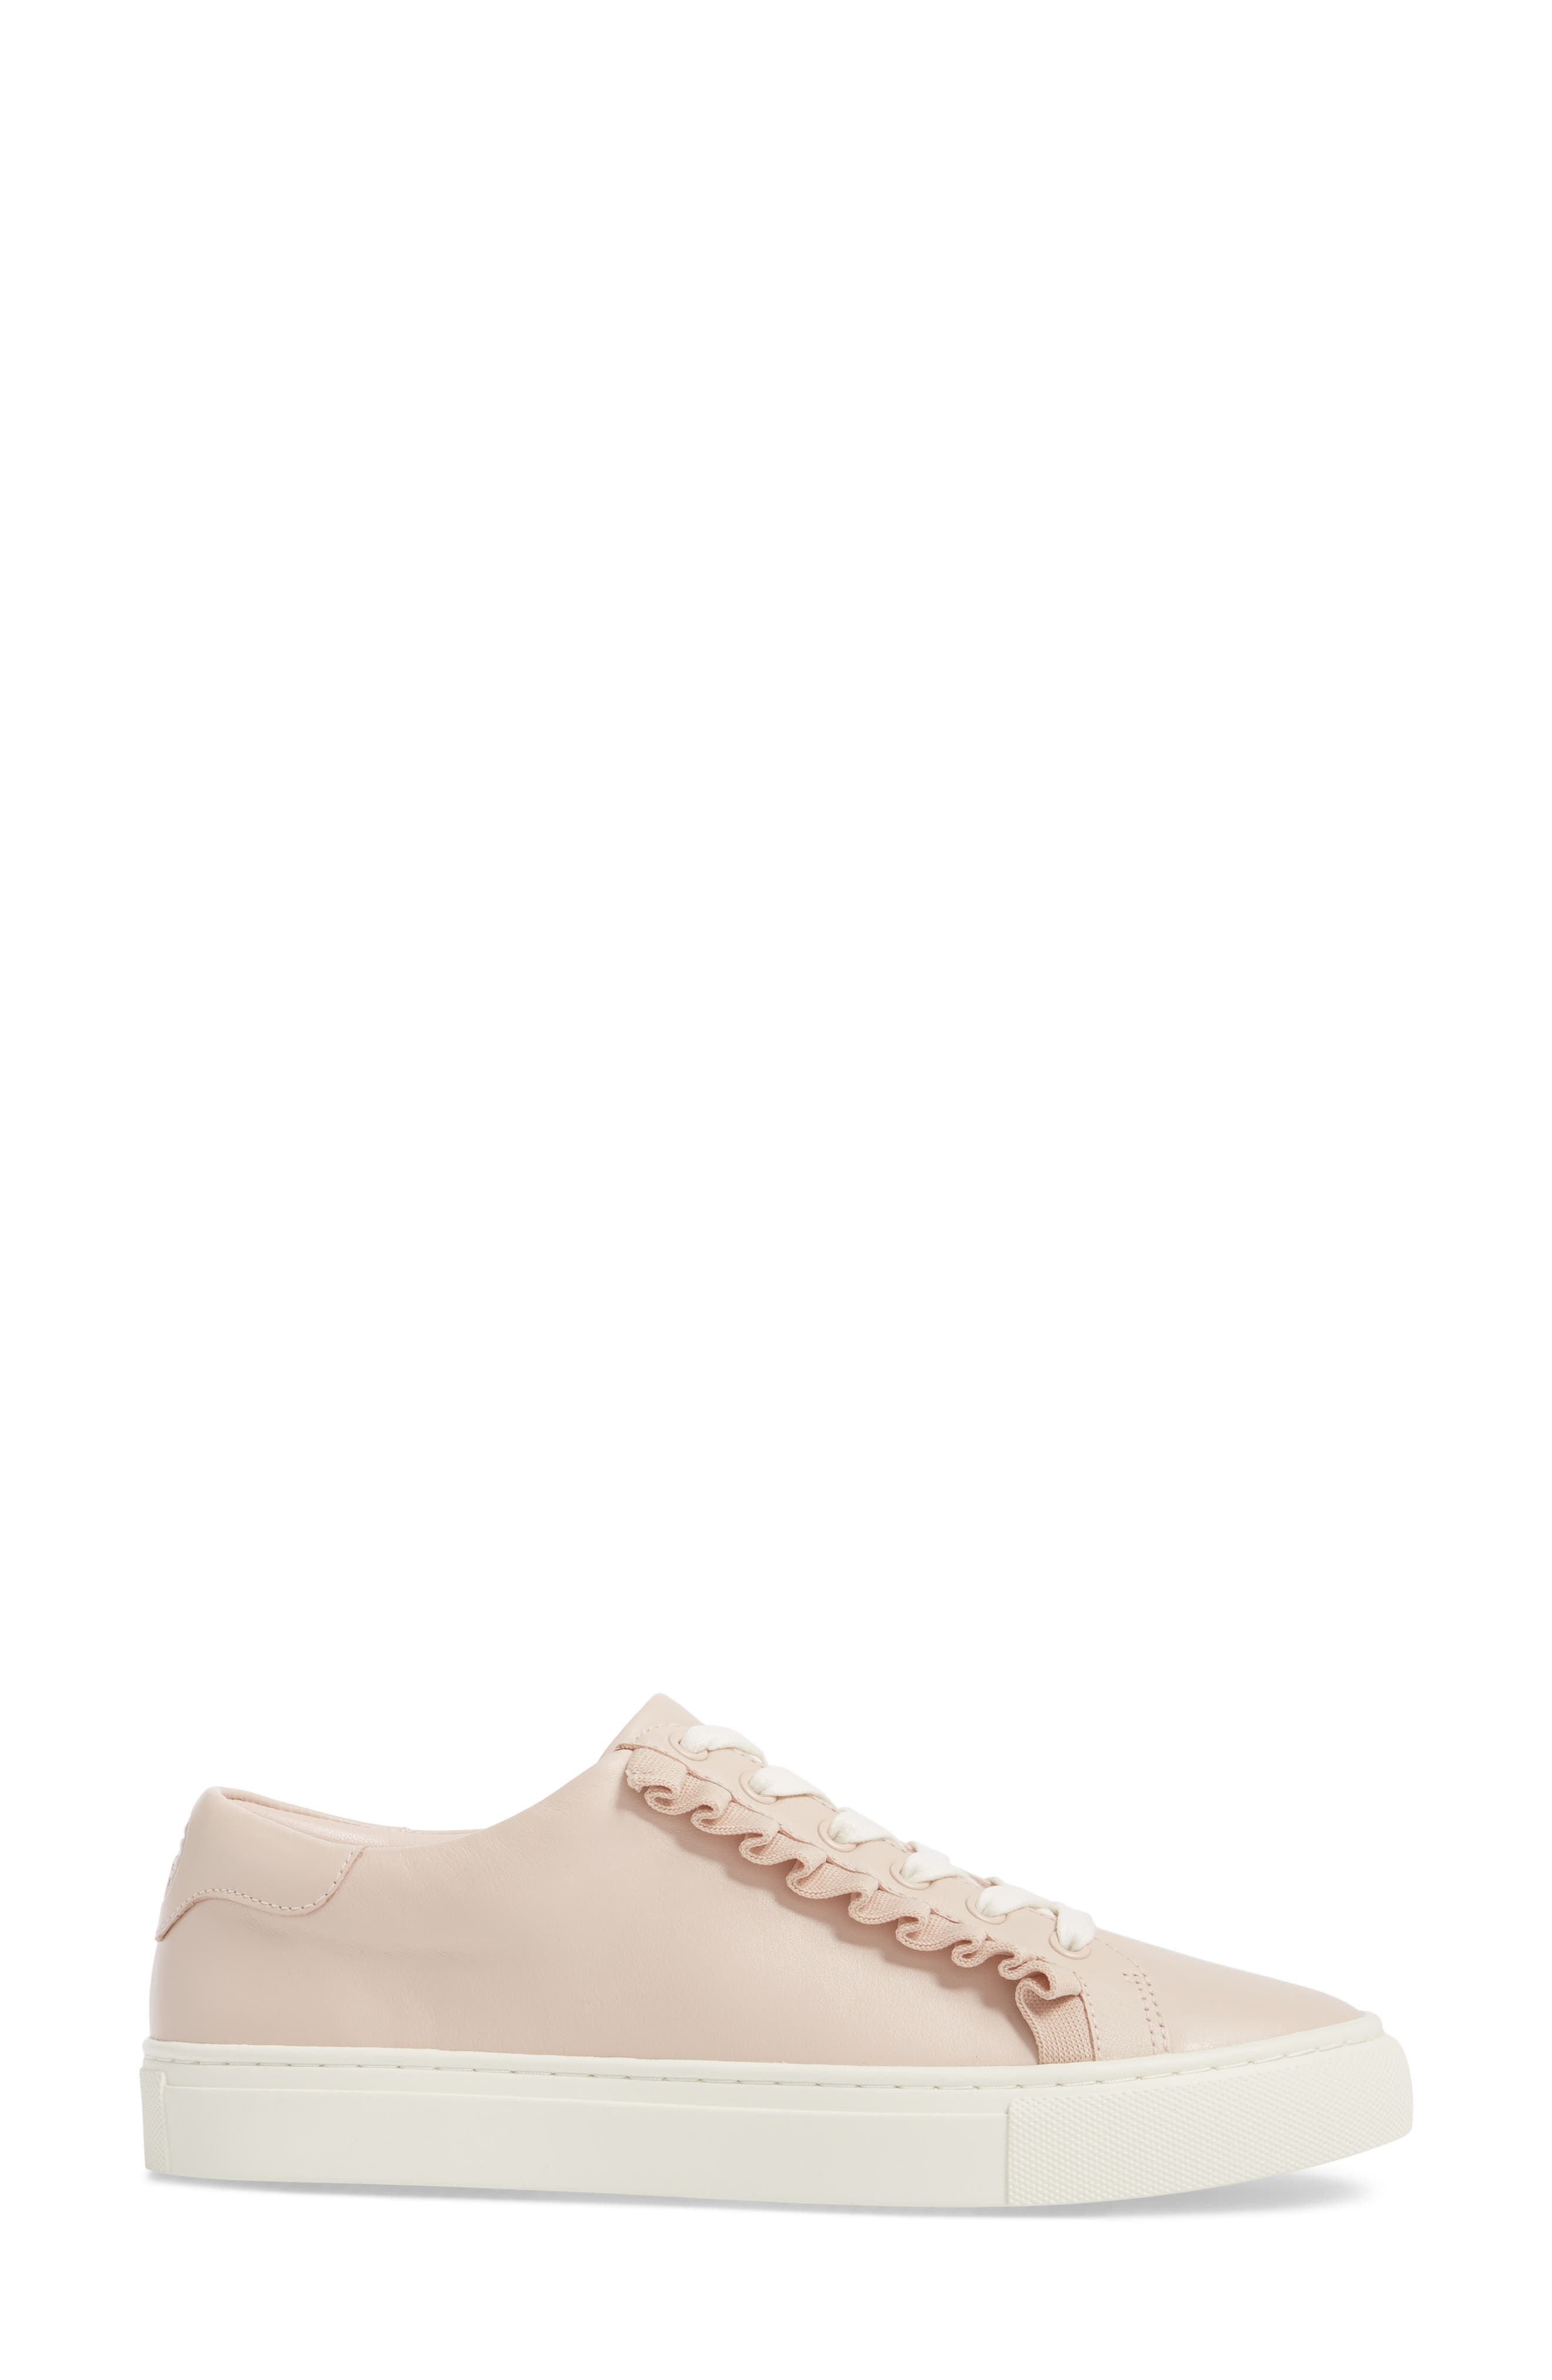 Ruffle Sneaker,                             Alternate thumbnail 3, color,                             SHELL PINK